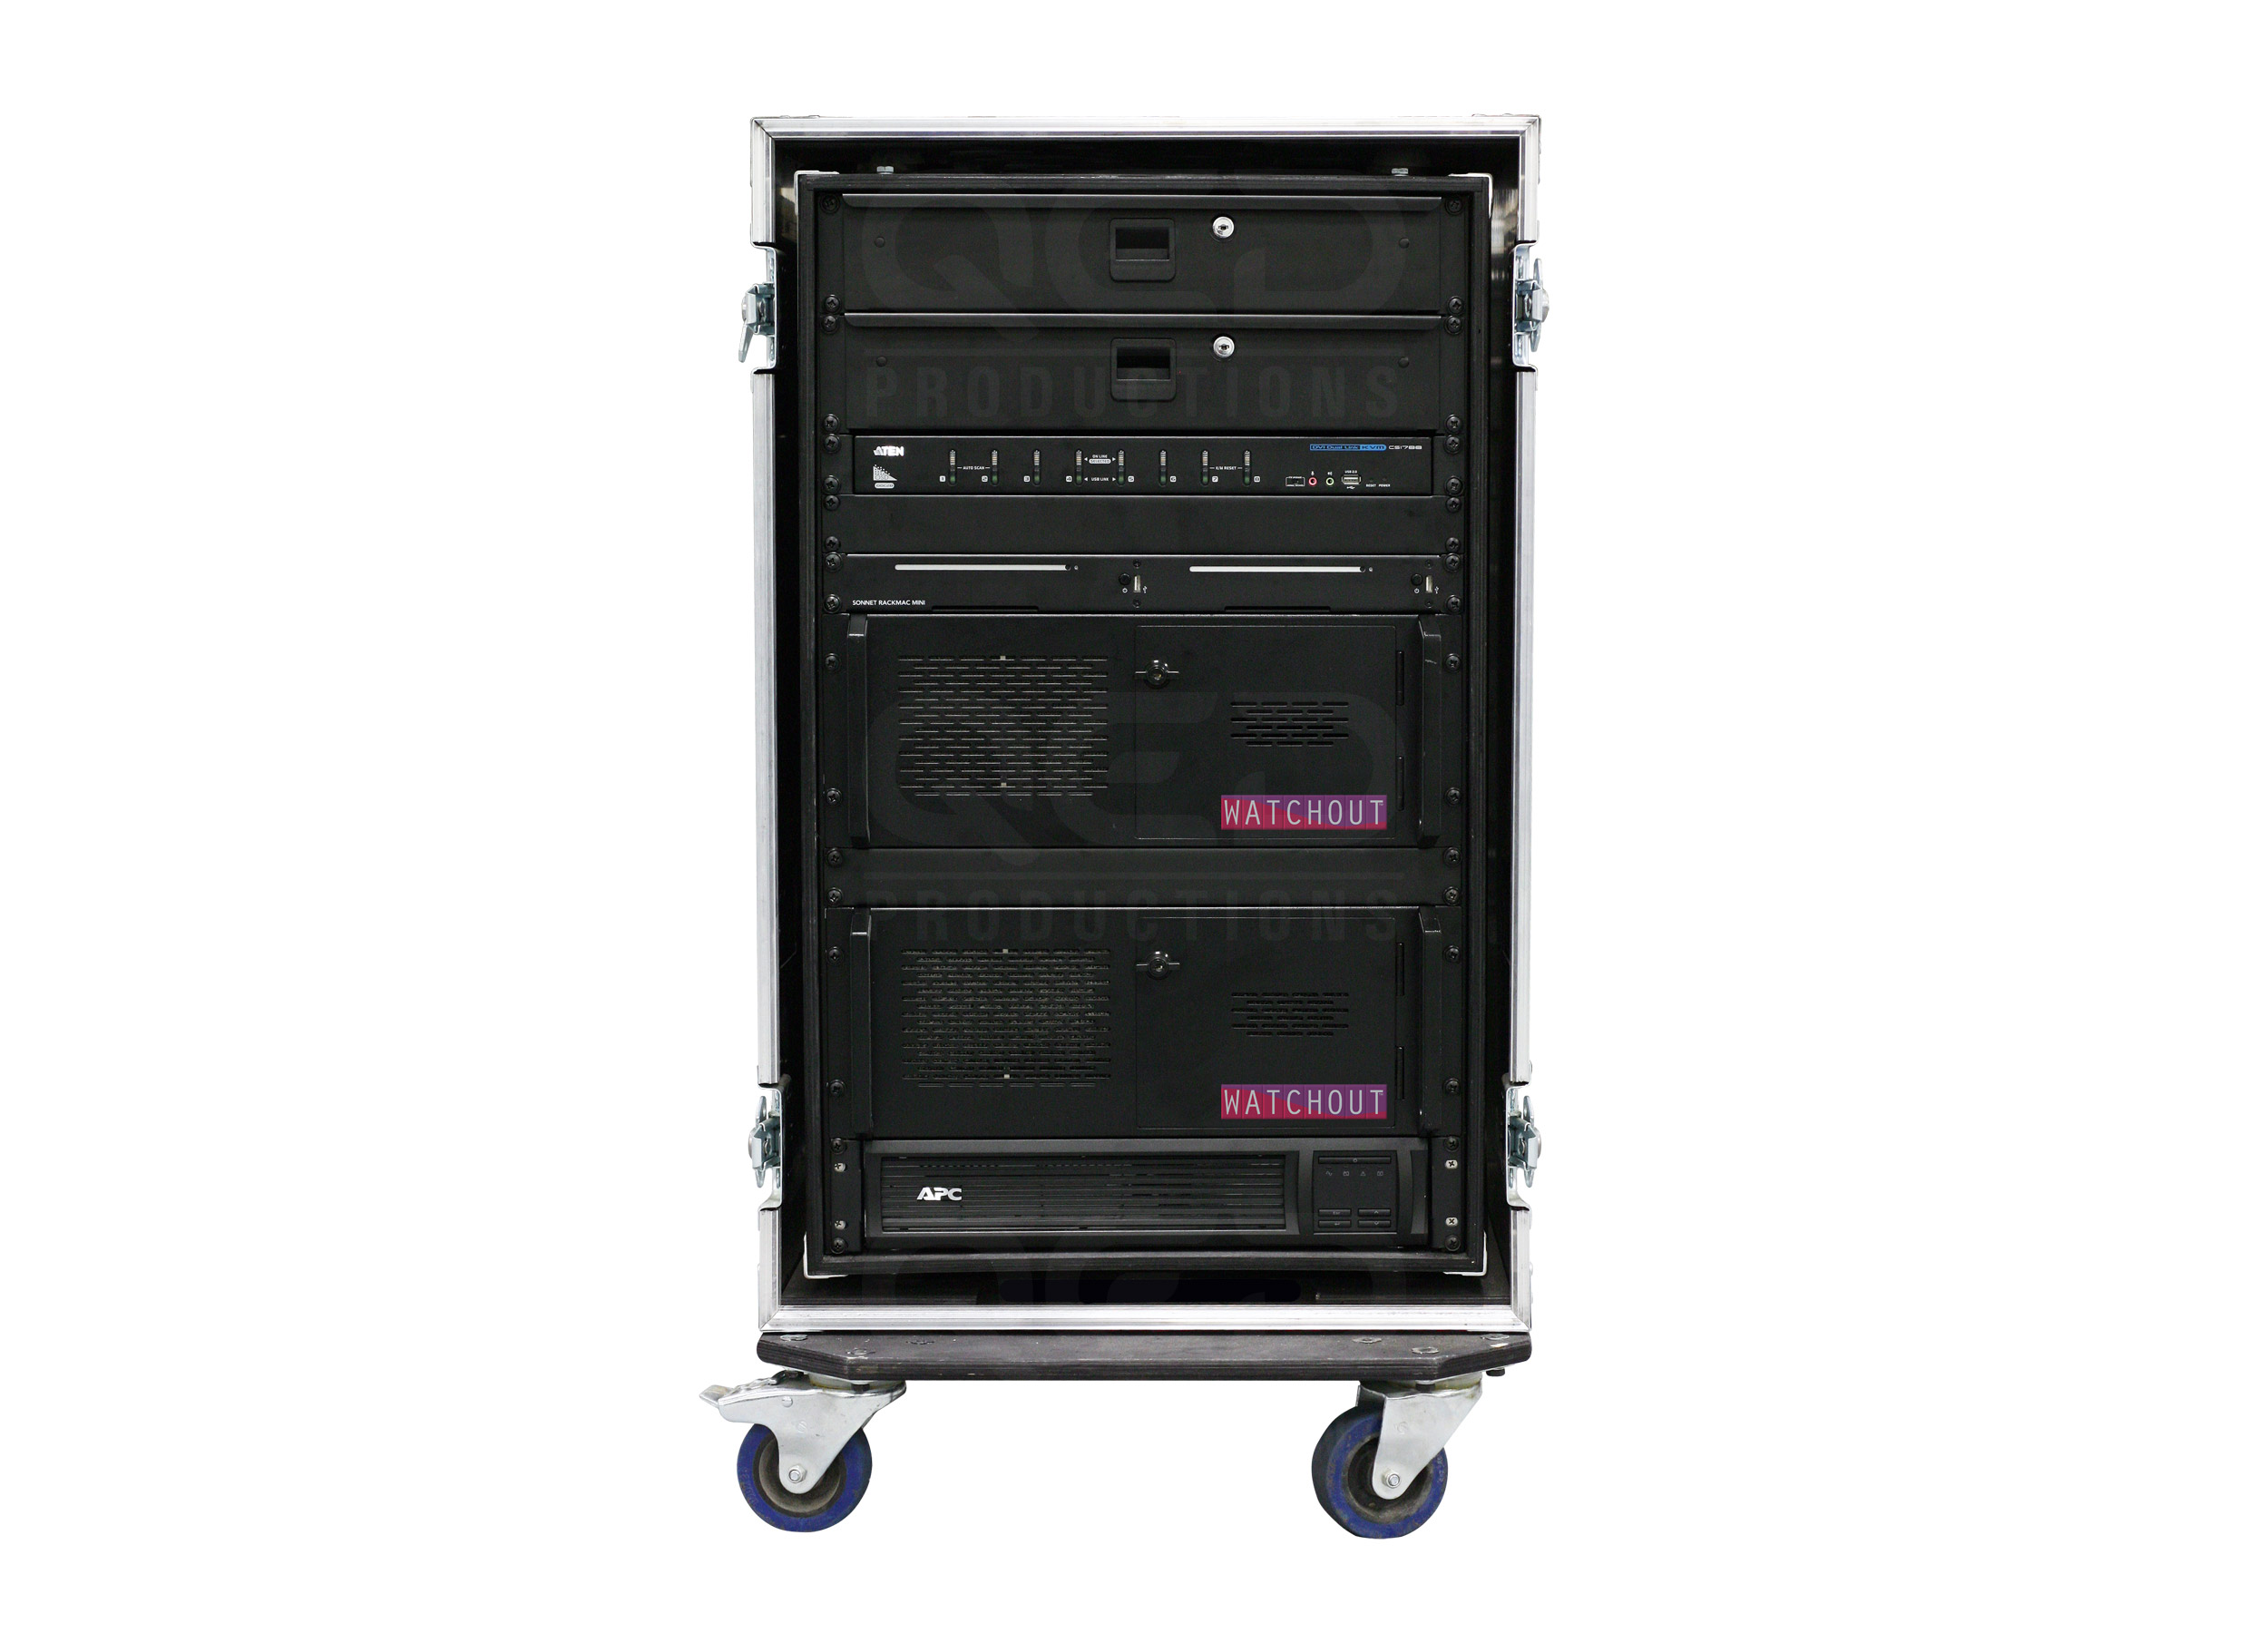 Stereo Racks additionally Dvi D Single Link 6 in addition Suporte Para Tv Sbrp758 together with Spectral HE1203 furthermore Stereo Racks. on tv audio rack